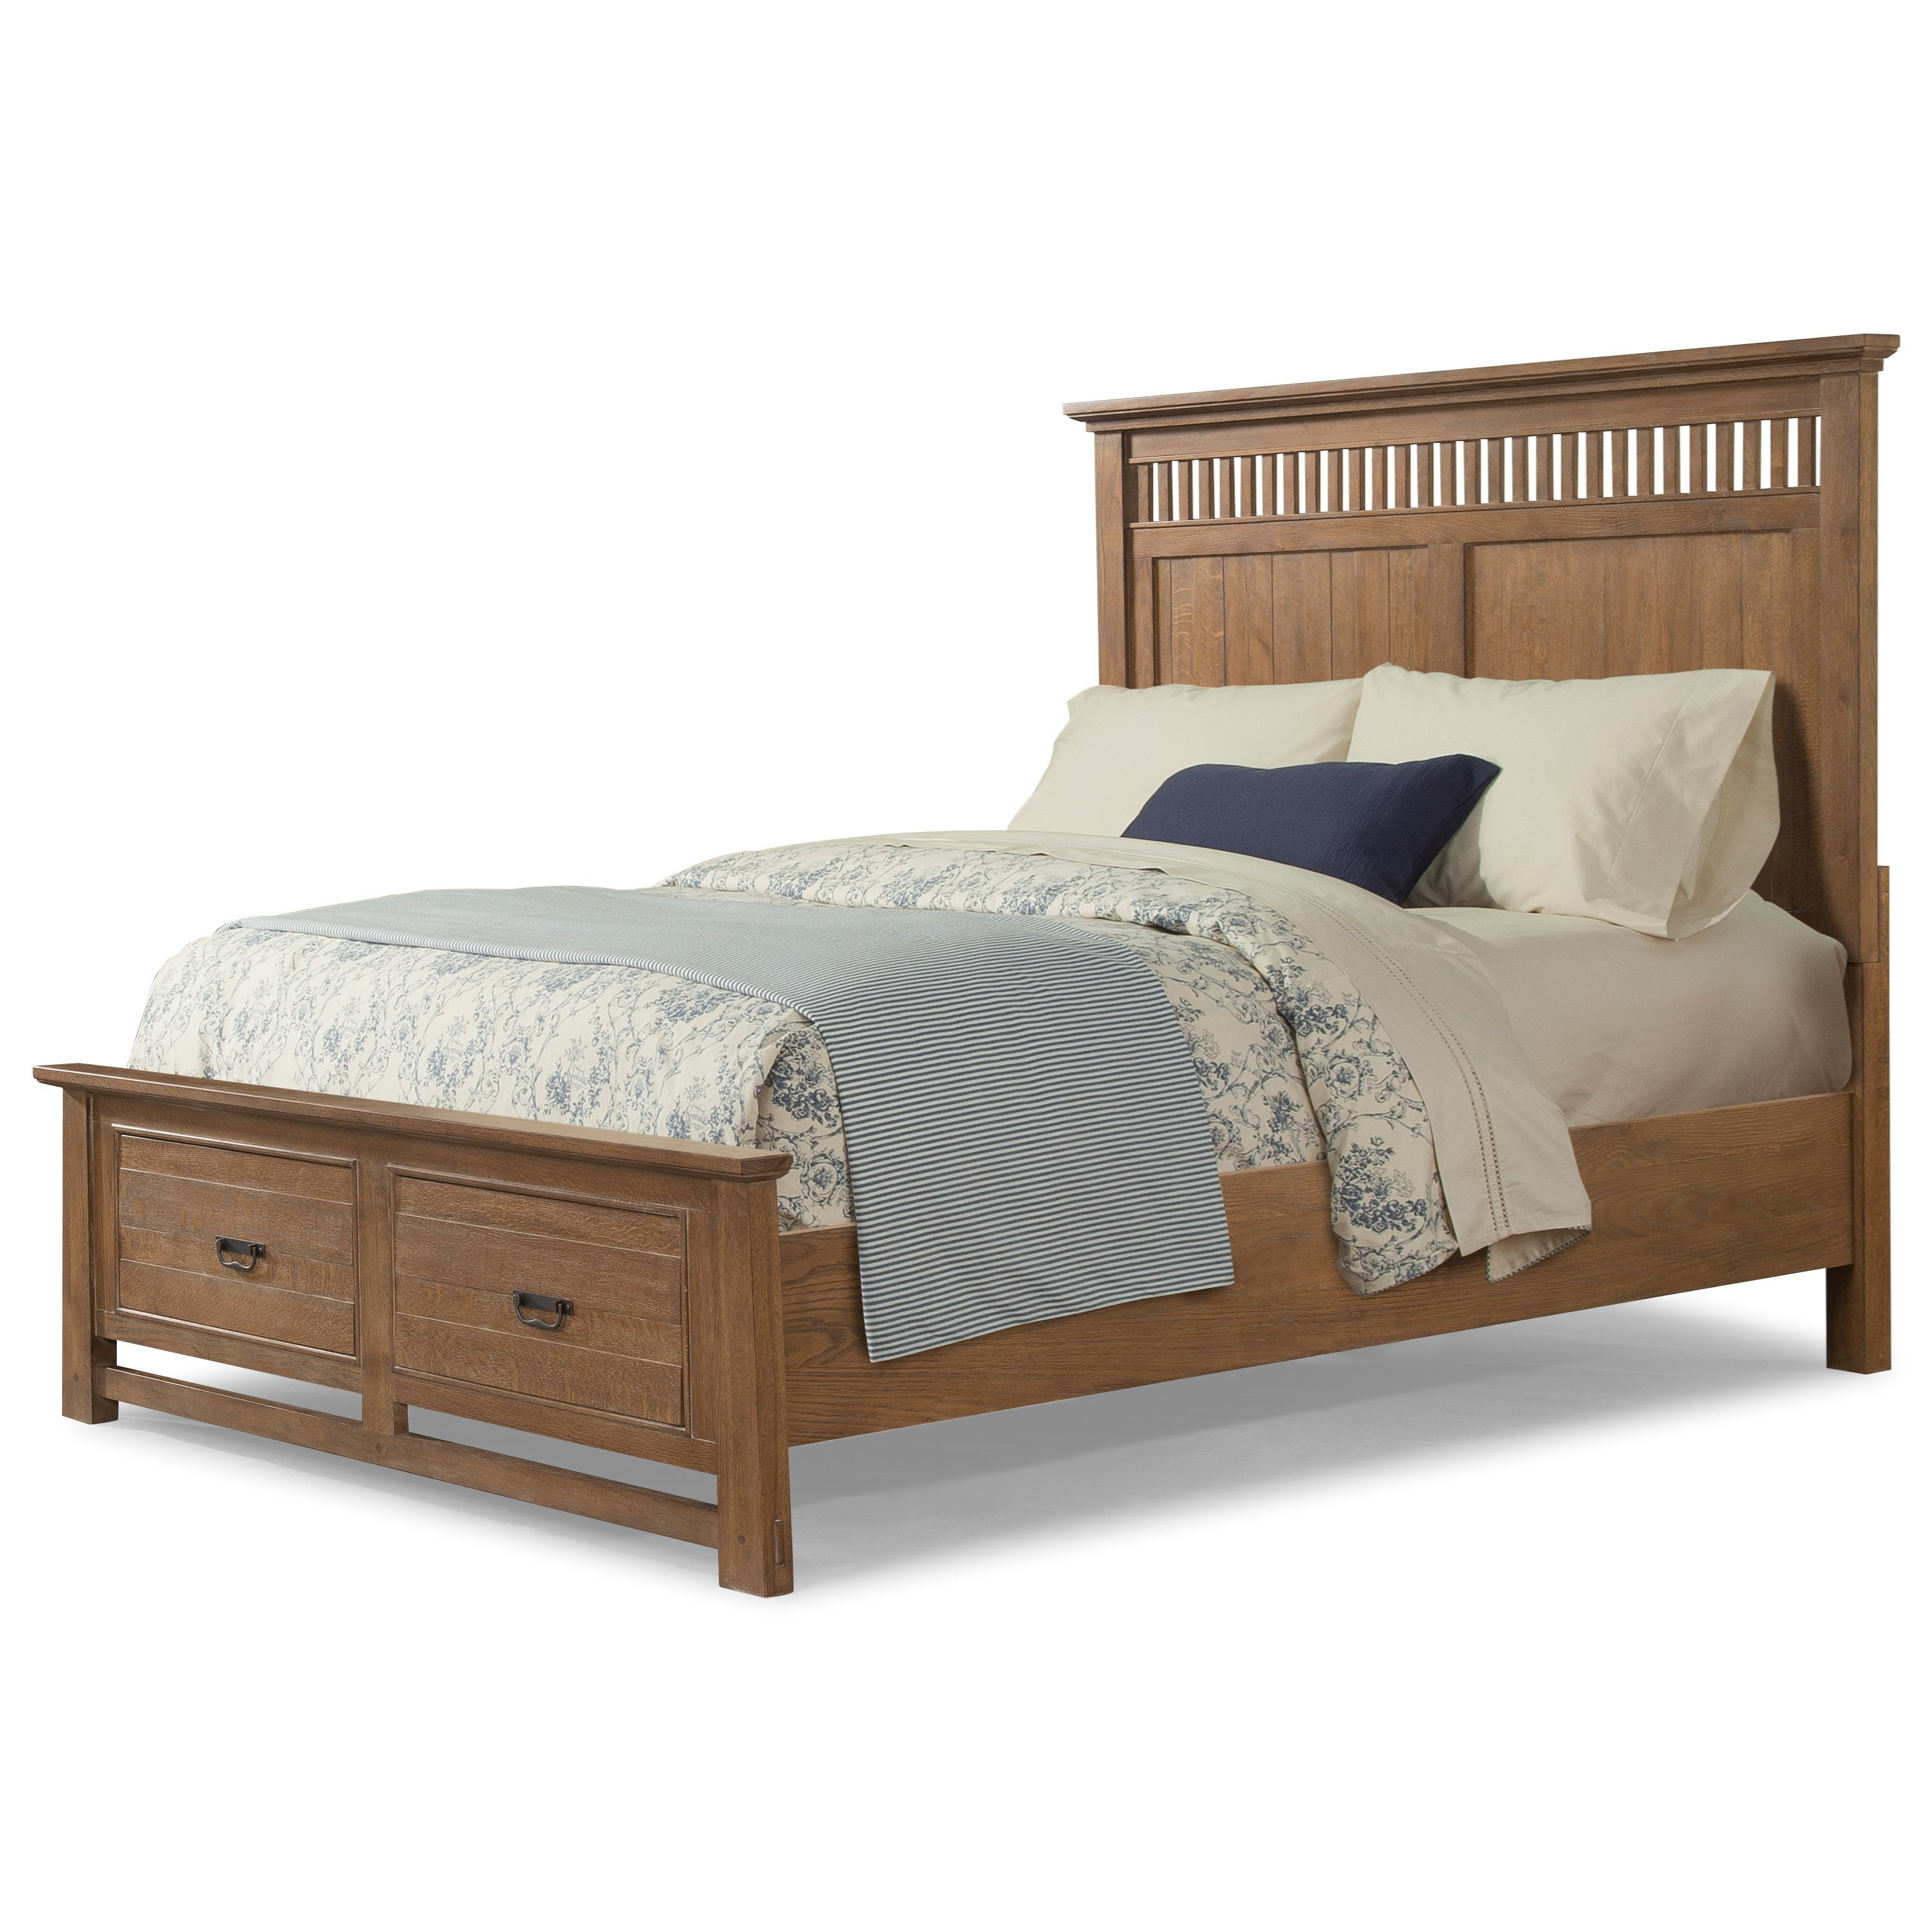 Cresent Fine Furniture Camden QUEEN STORAGE BED-STOCK ONLY! - Item Number: 202-131QH+QFS+QRS